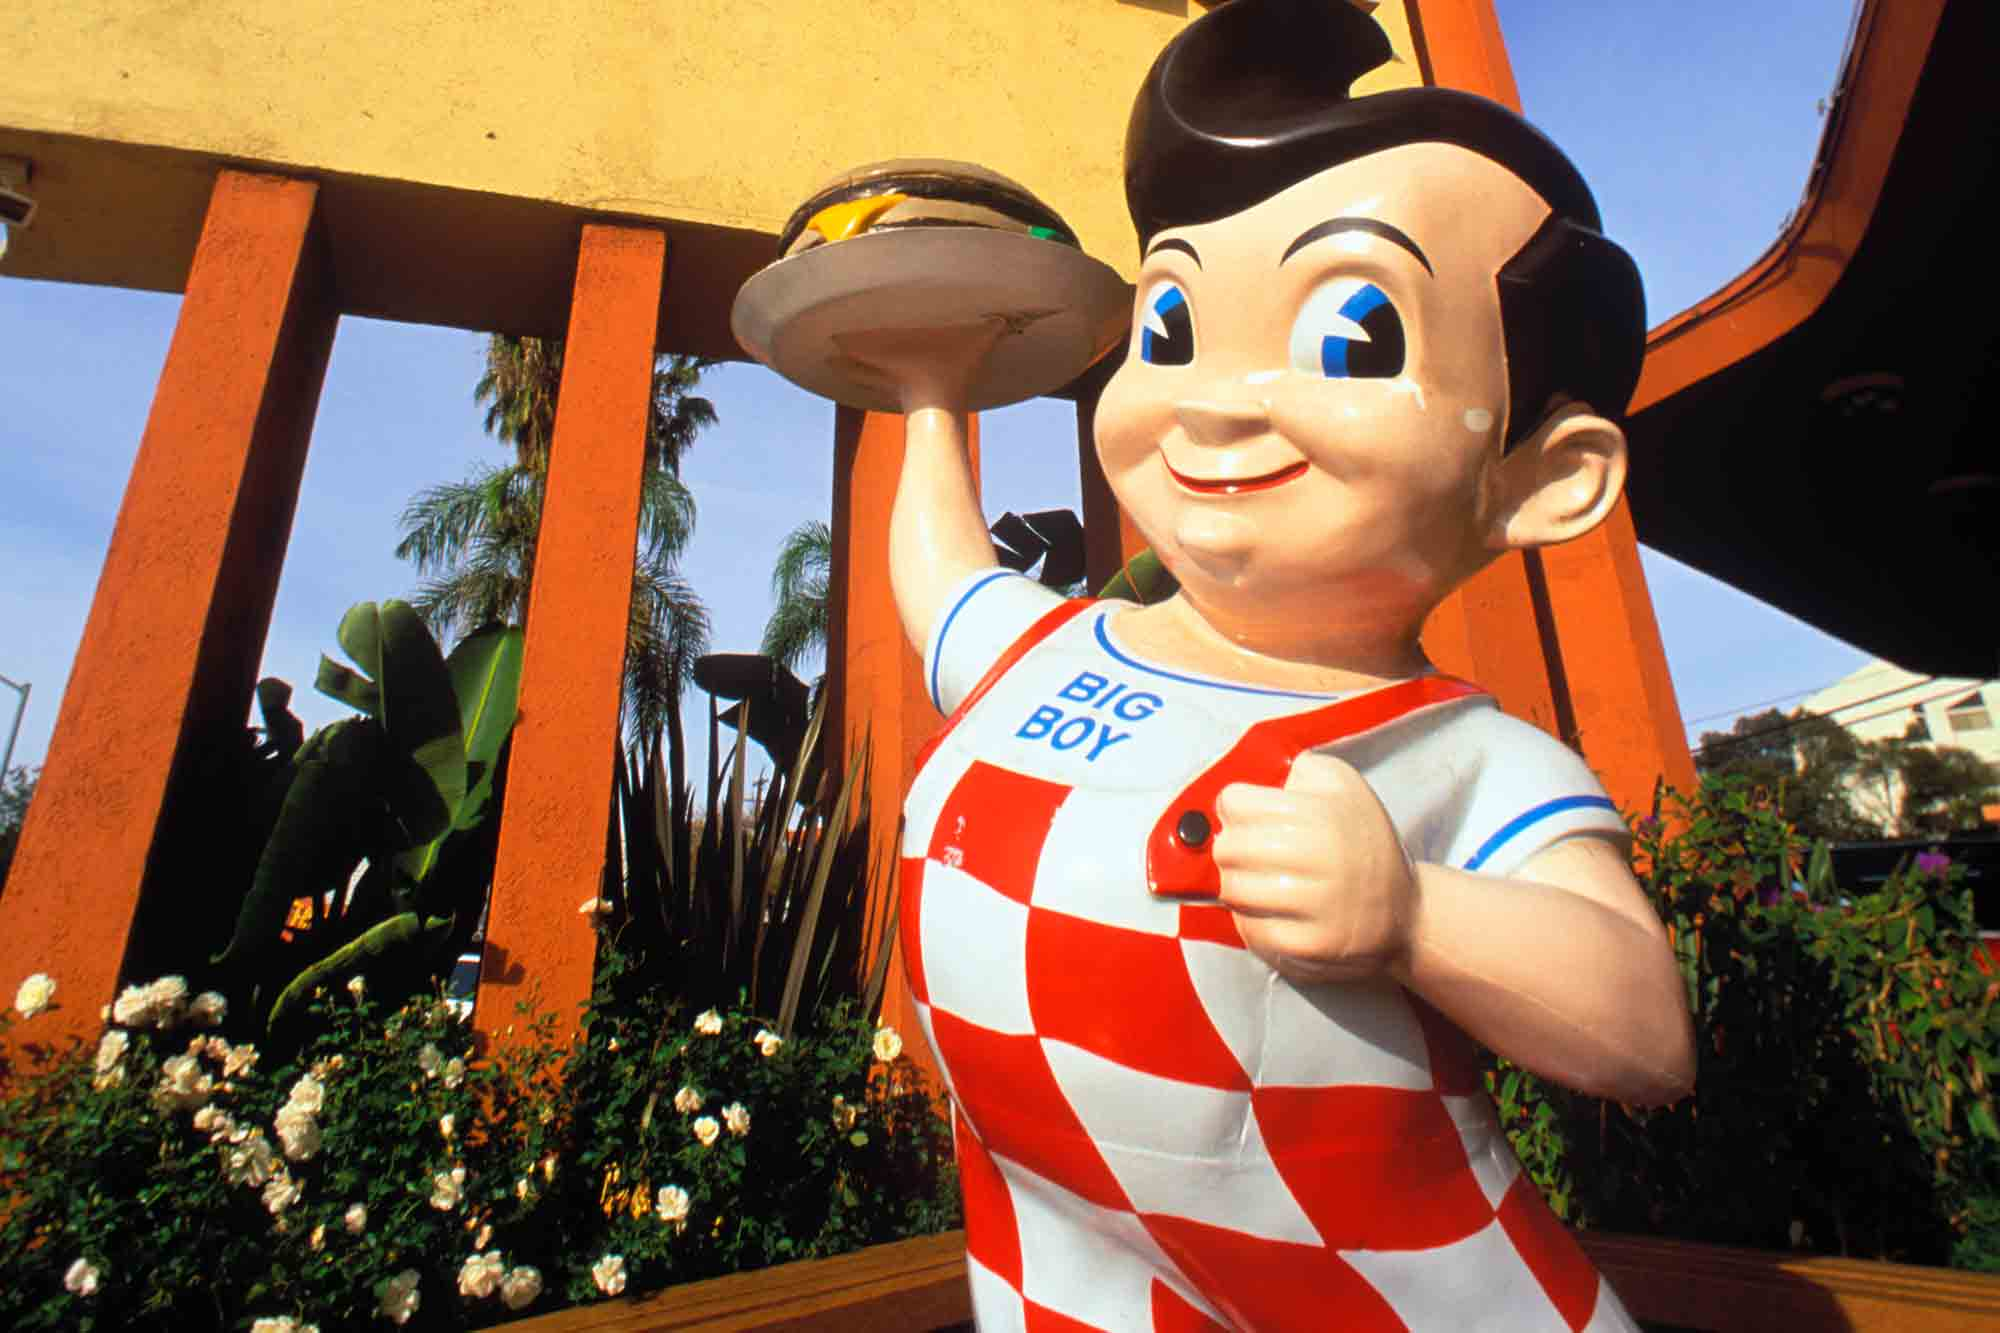 Bob's Big Boy Mascot Change